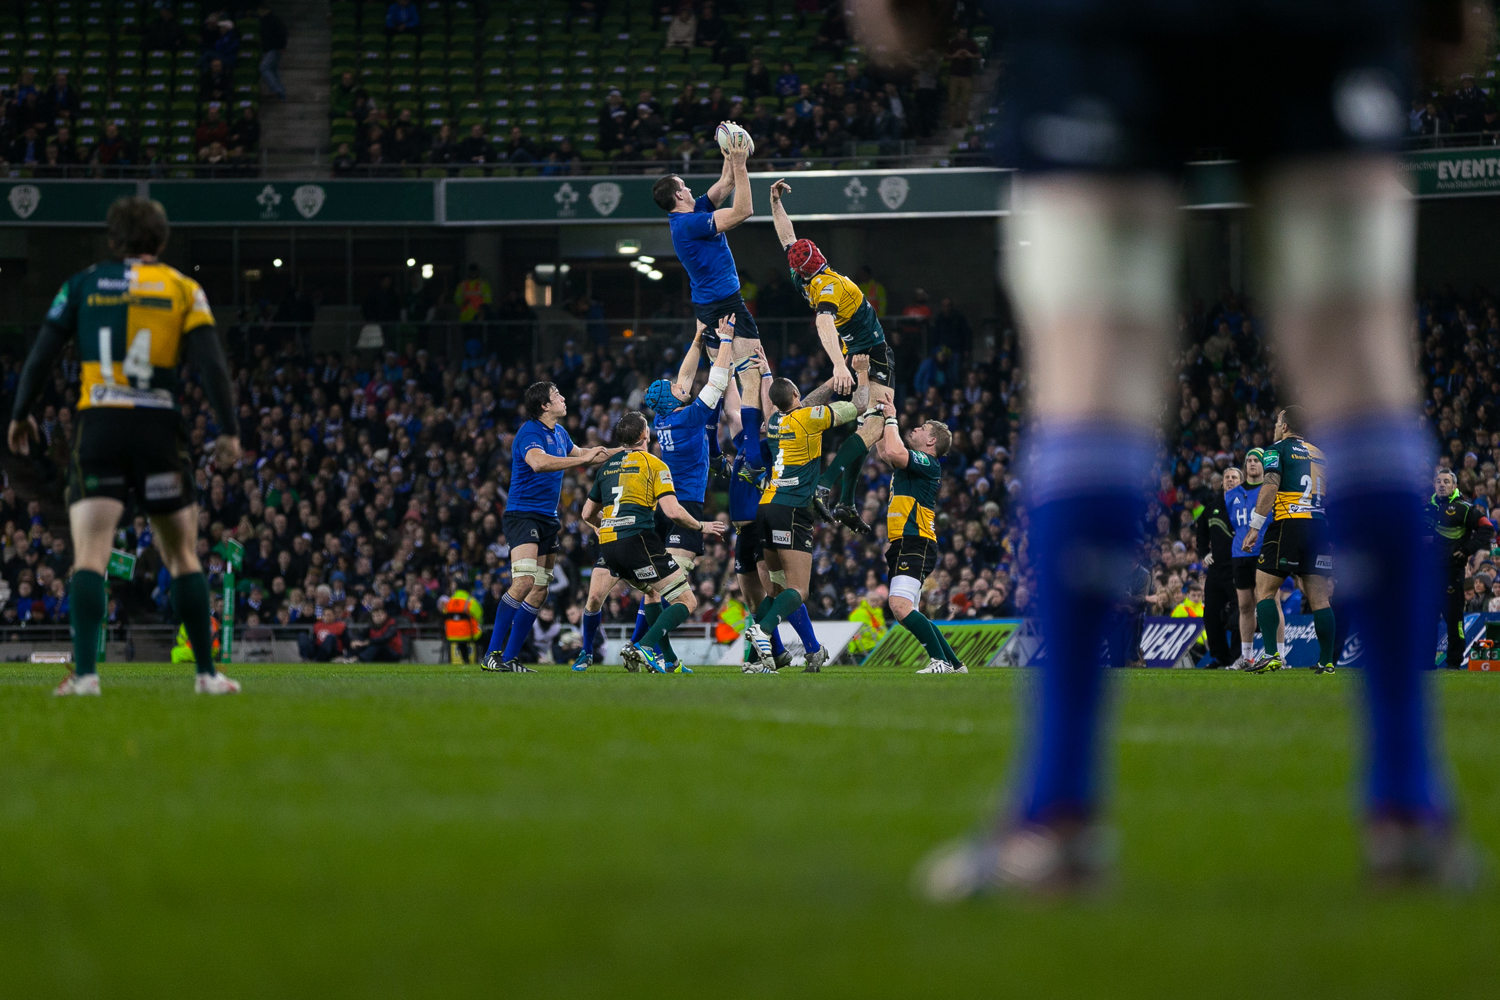 Leinster_vs_NorthamptonSaints-51